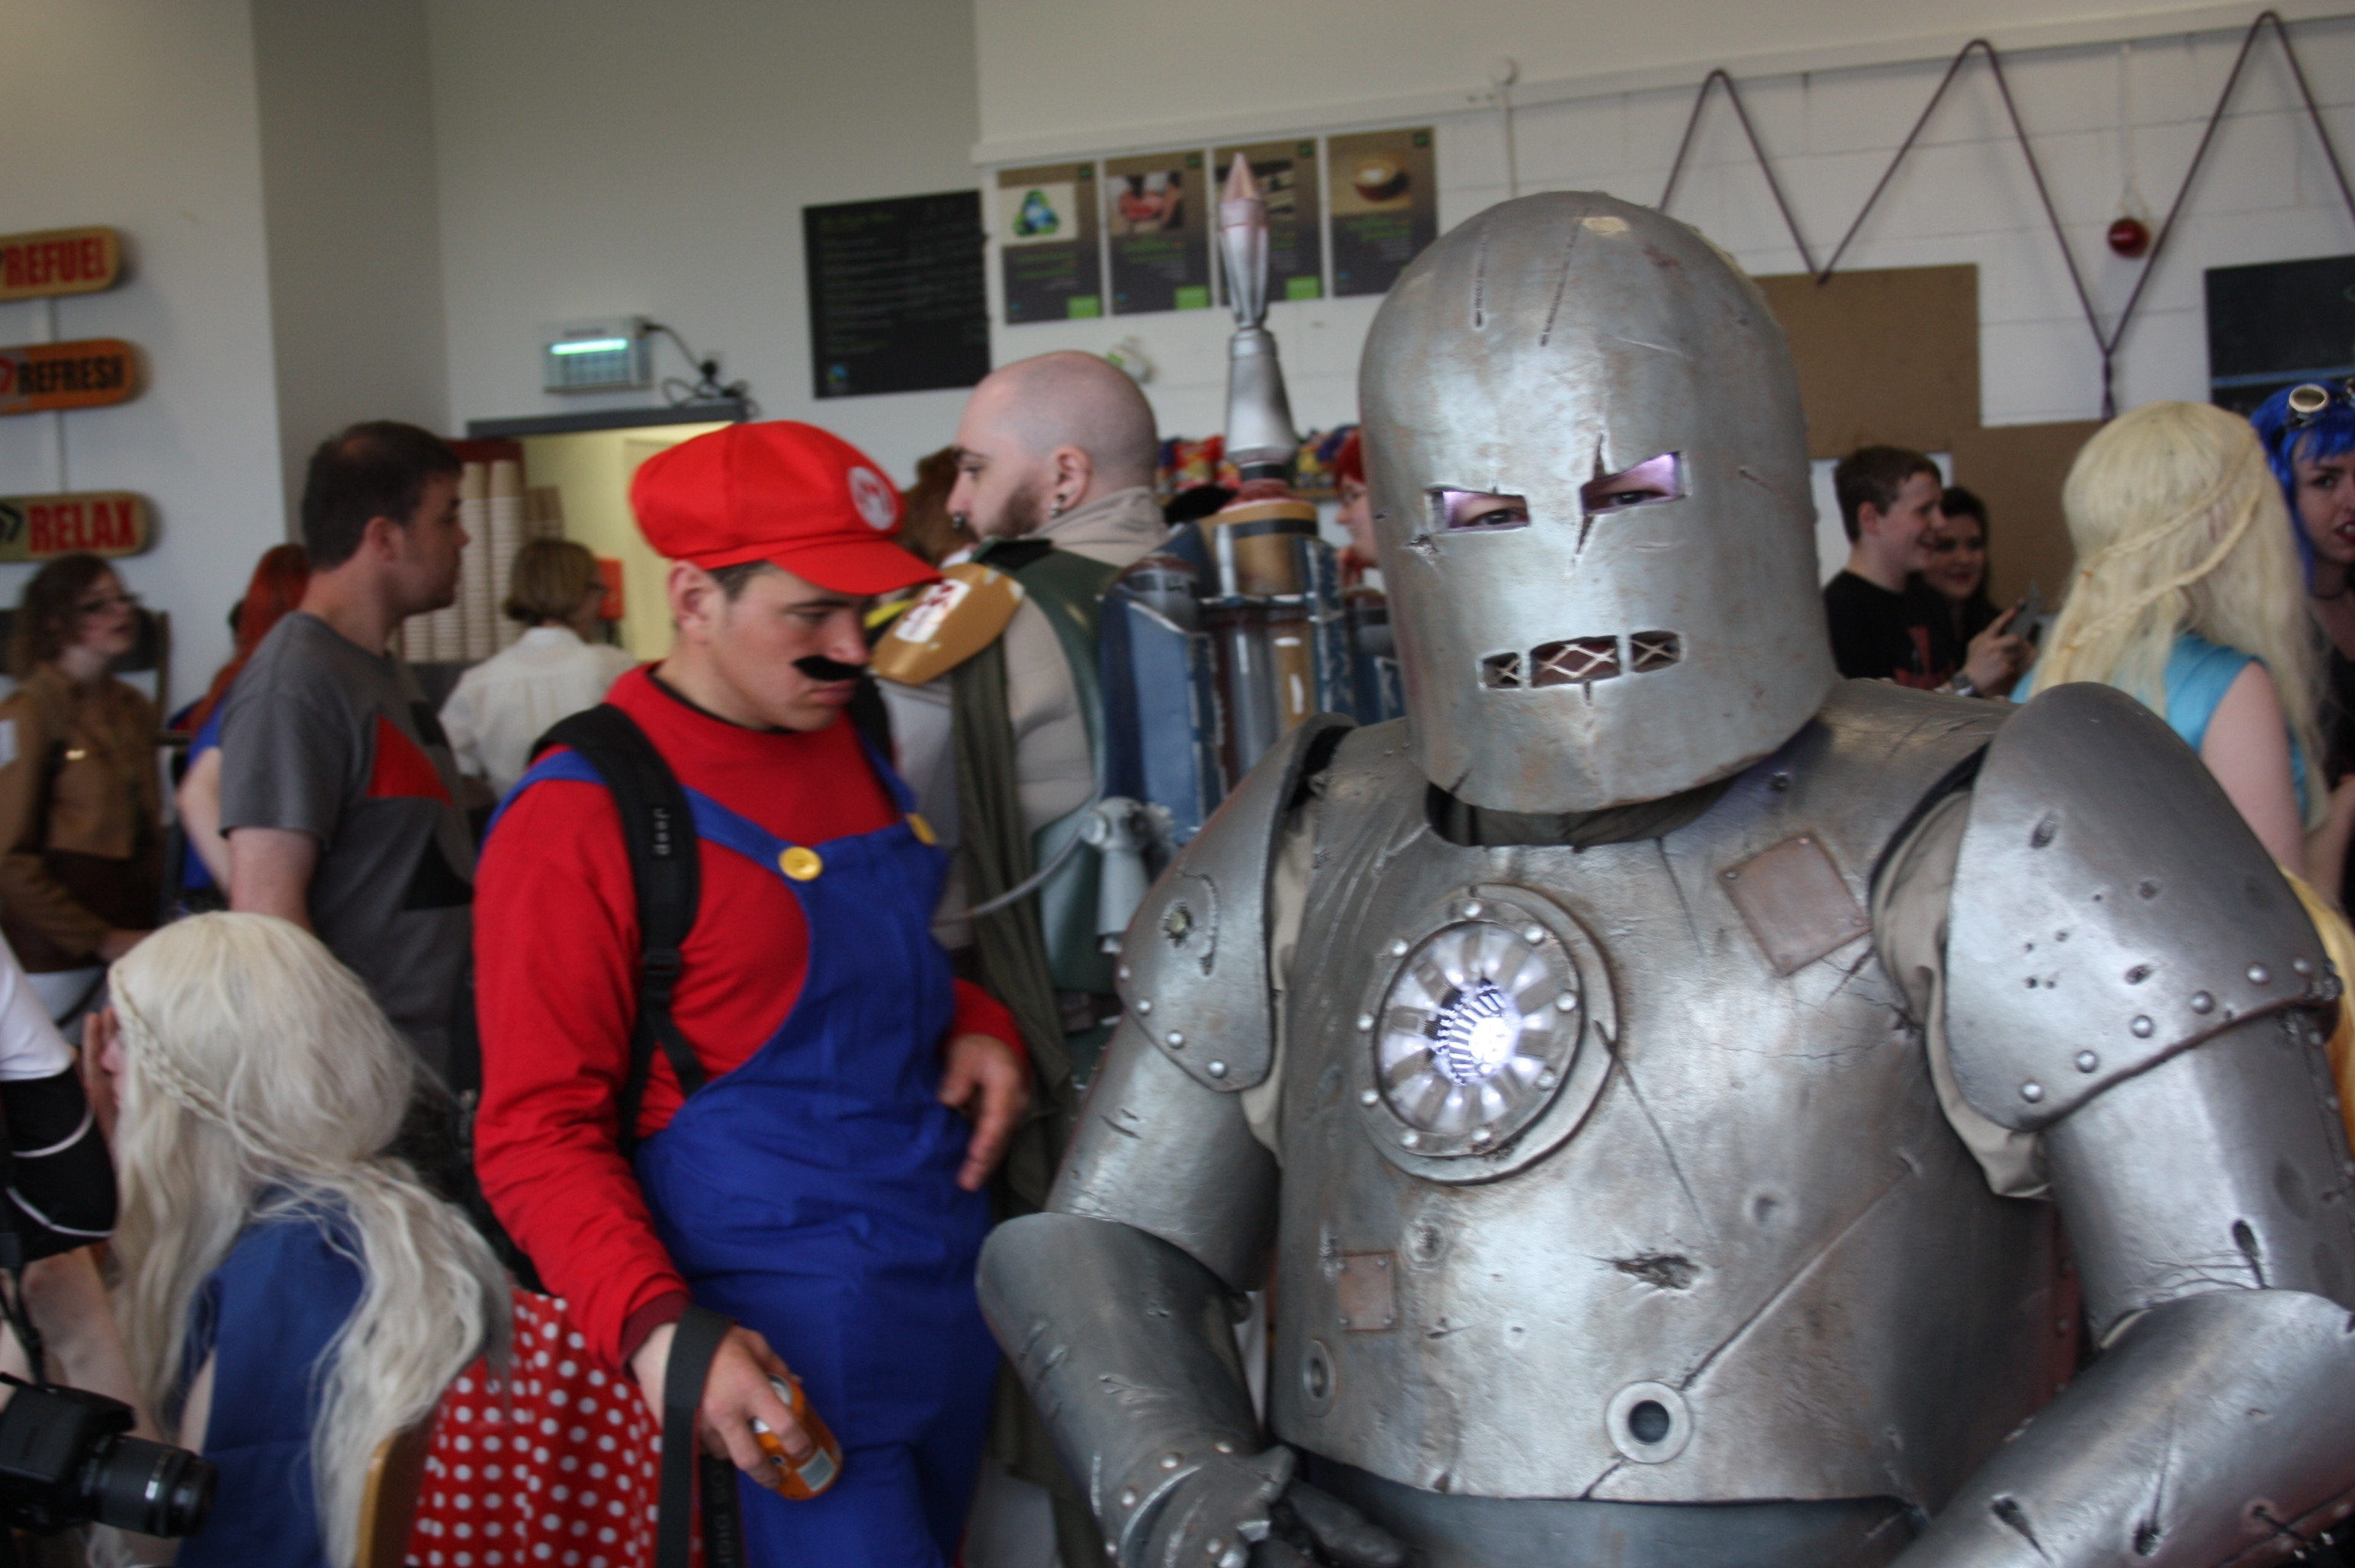 Iron Man Mark I and Mario in the middle